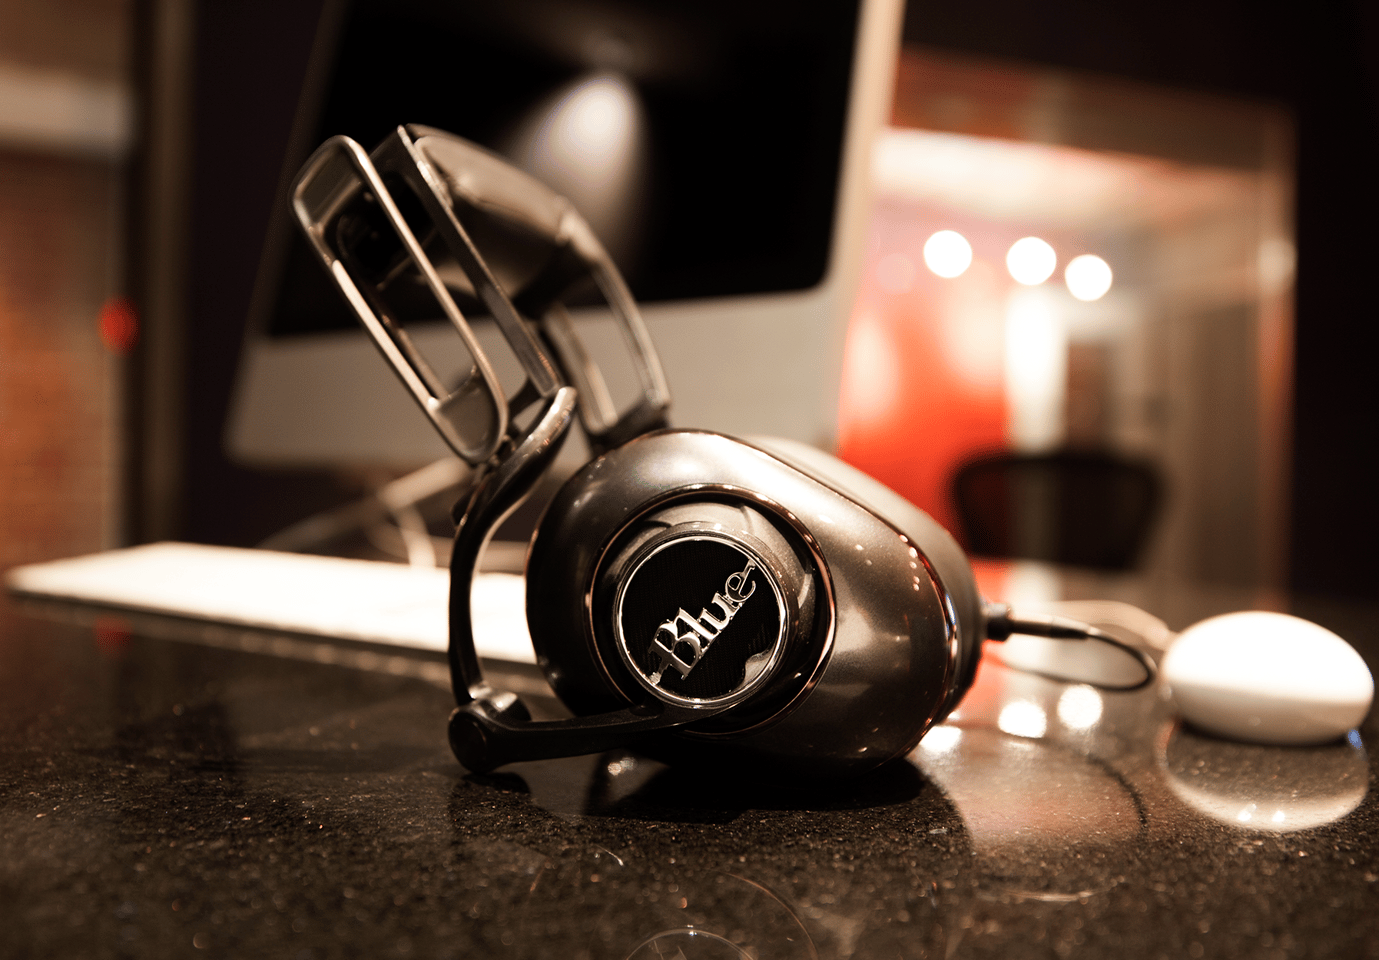 The Mo-Fi headphones feature a multi-jointed headband that can be adjusted for pressure against the head